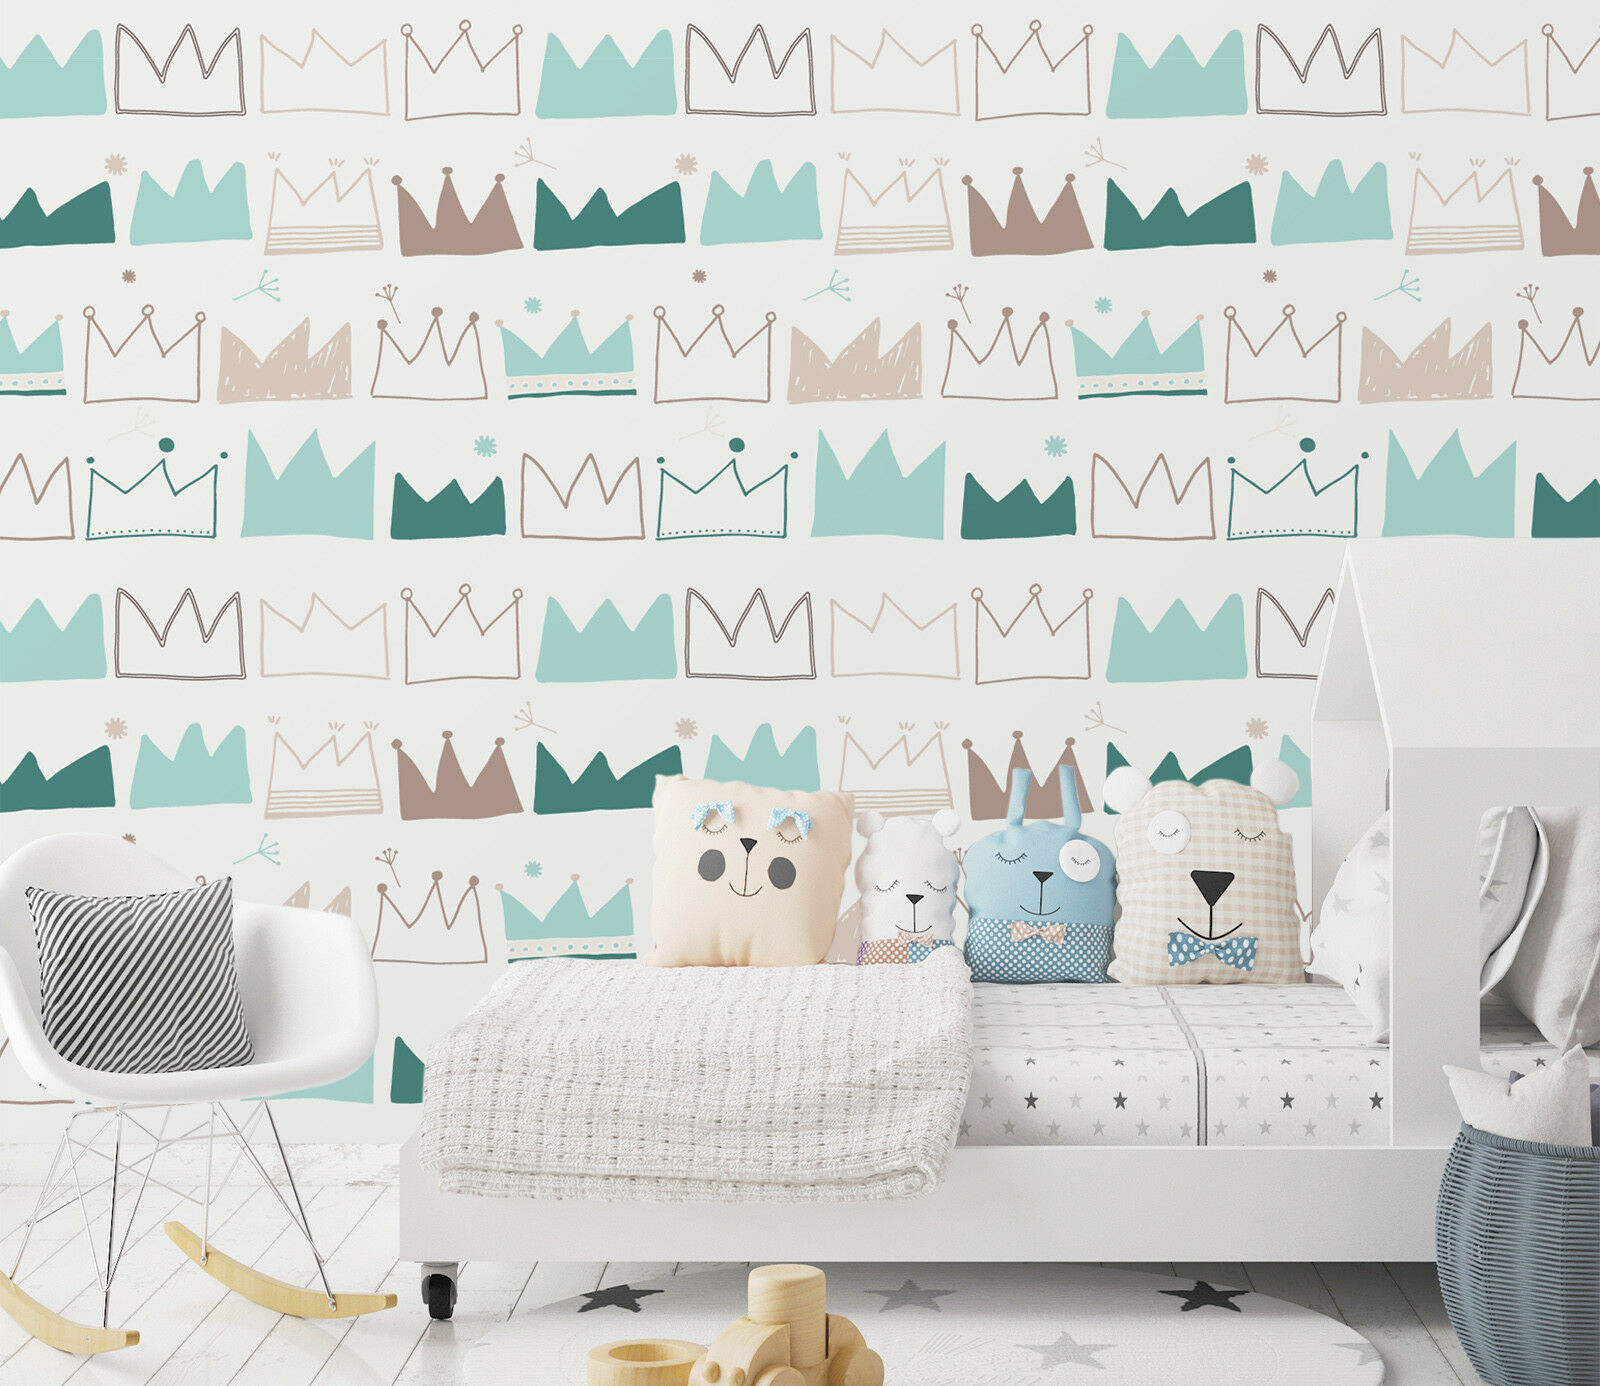 3D Hand Painted Crown 22 Wallpaper Mural Wall Print Decal Indoor Murals AU Lemon